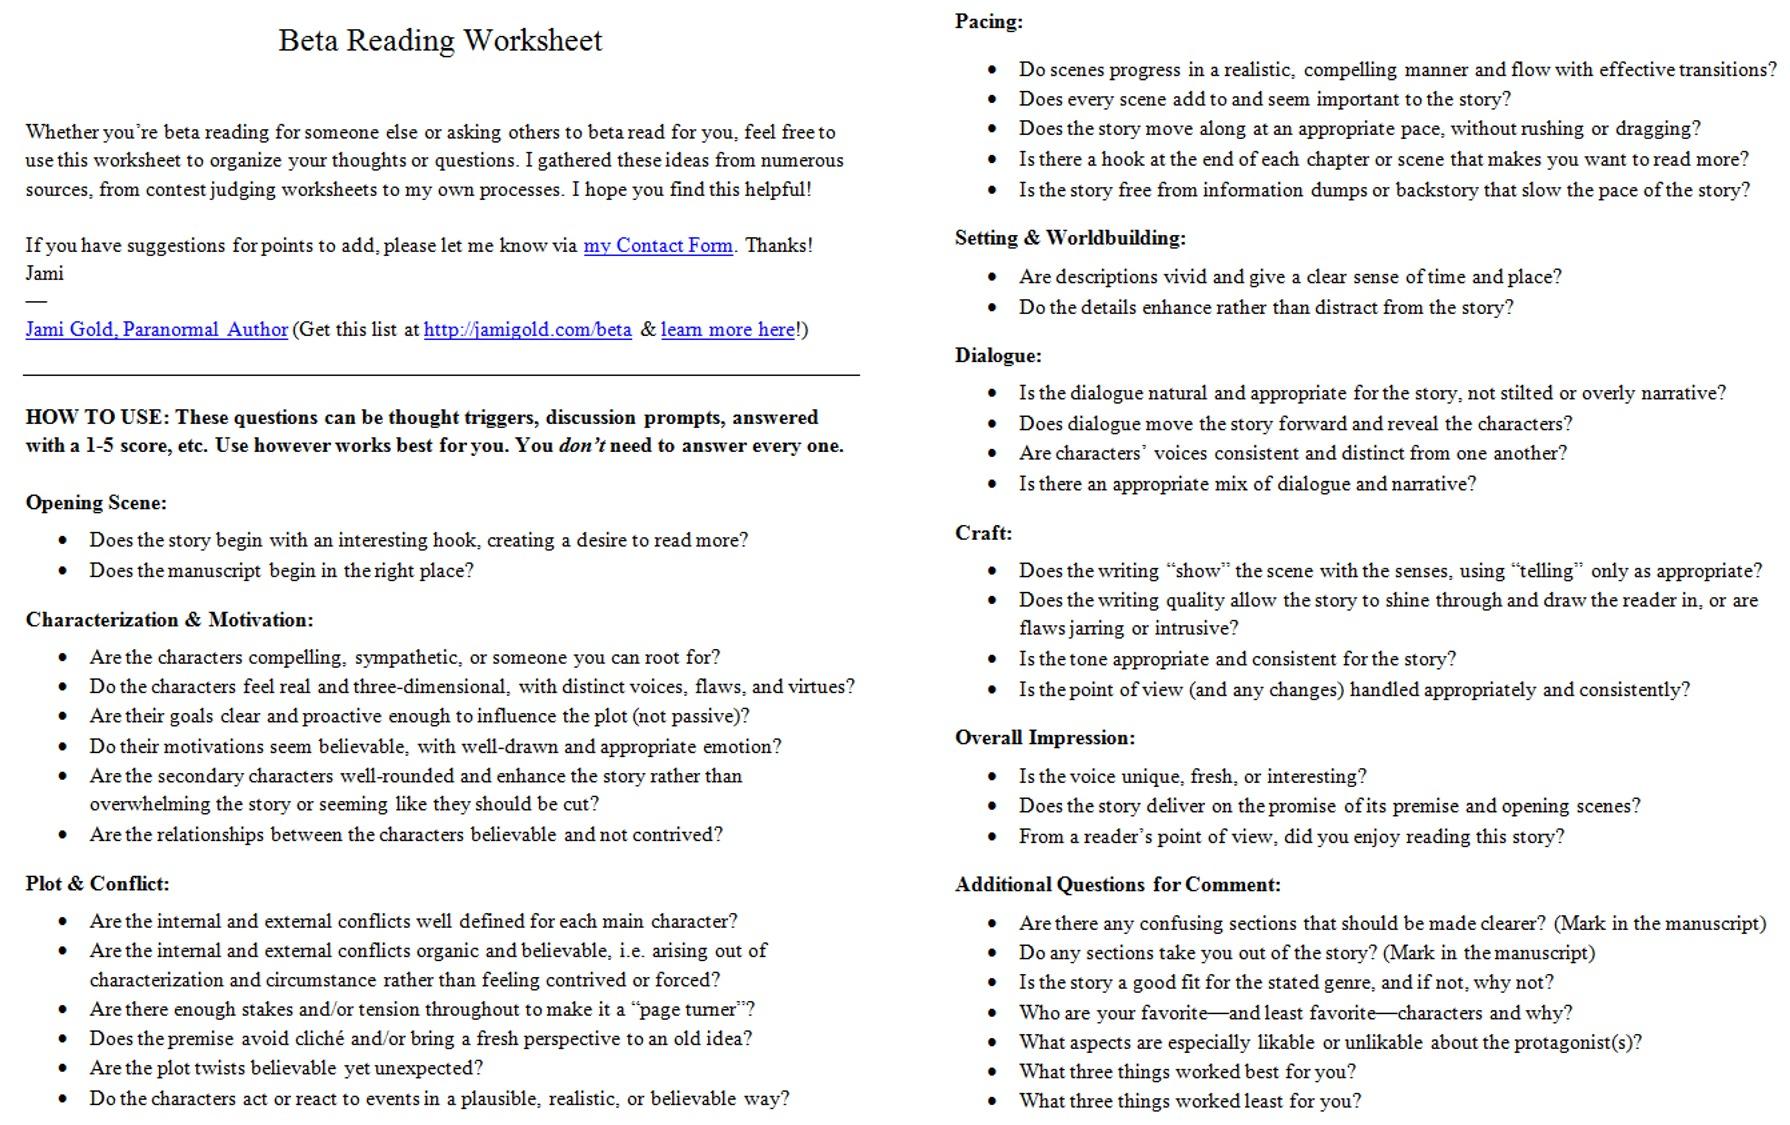 Proatmealus  Pretty Worksheets For Writers  Jami Gold Paranormal Author With Marvelous Screen Shot Of The Twopage Beta Reading Worksheet With Lovely Eic Worksheet A Also Th Grade Biology Worksheets In Addition How To Make A Worksheet And Donald In Mathmagic Land Worksheet As Well As Th Grade Math Worksheet Additionally Causes Of The Civil War Worksheet From Jamigoldcom With Proatmealus  Marvelous Worksheets For Writers  Jami Gold Paranormal Author With Lovely Screen Shot Of The Twopage Beta Reading Worksheet And Pretty Eic Worksheet A Also Th Grade Biology Worksheets In Addition How To Make A Worksheet From Jamigoldcom